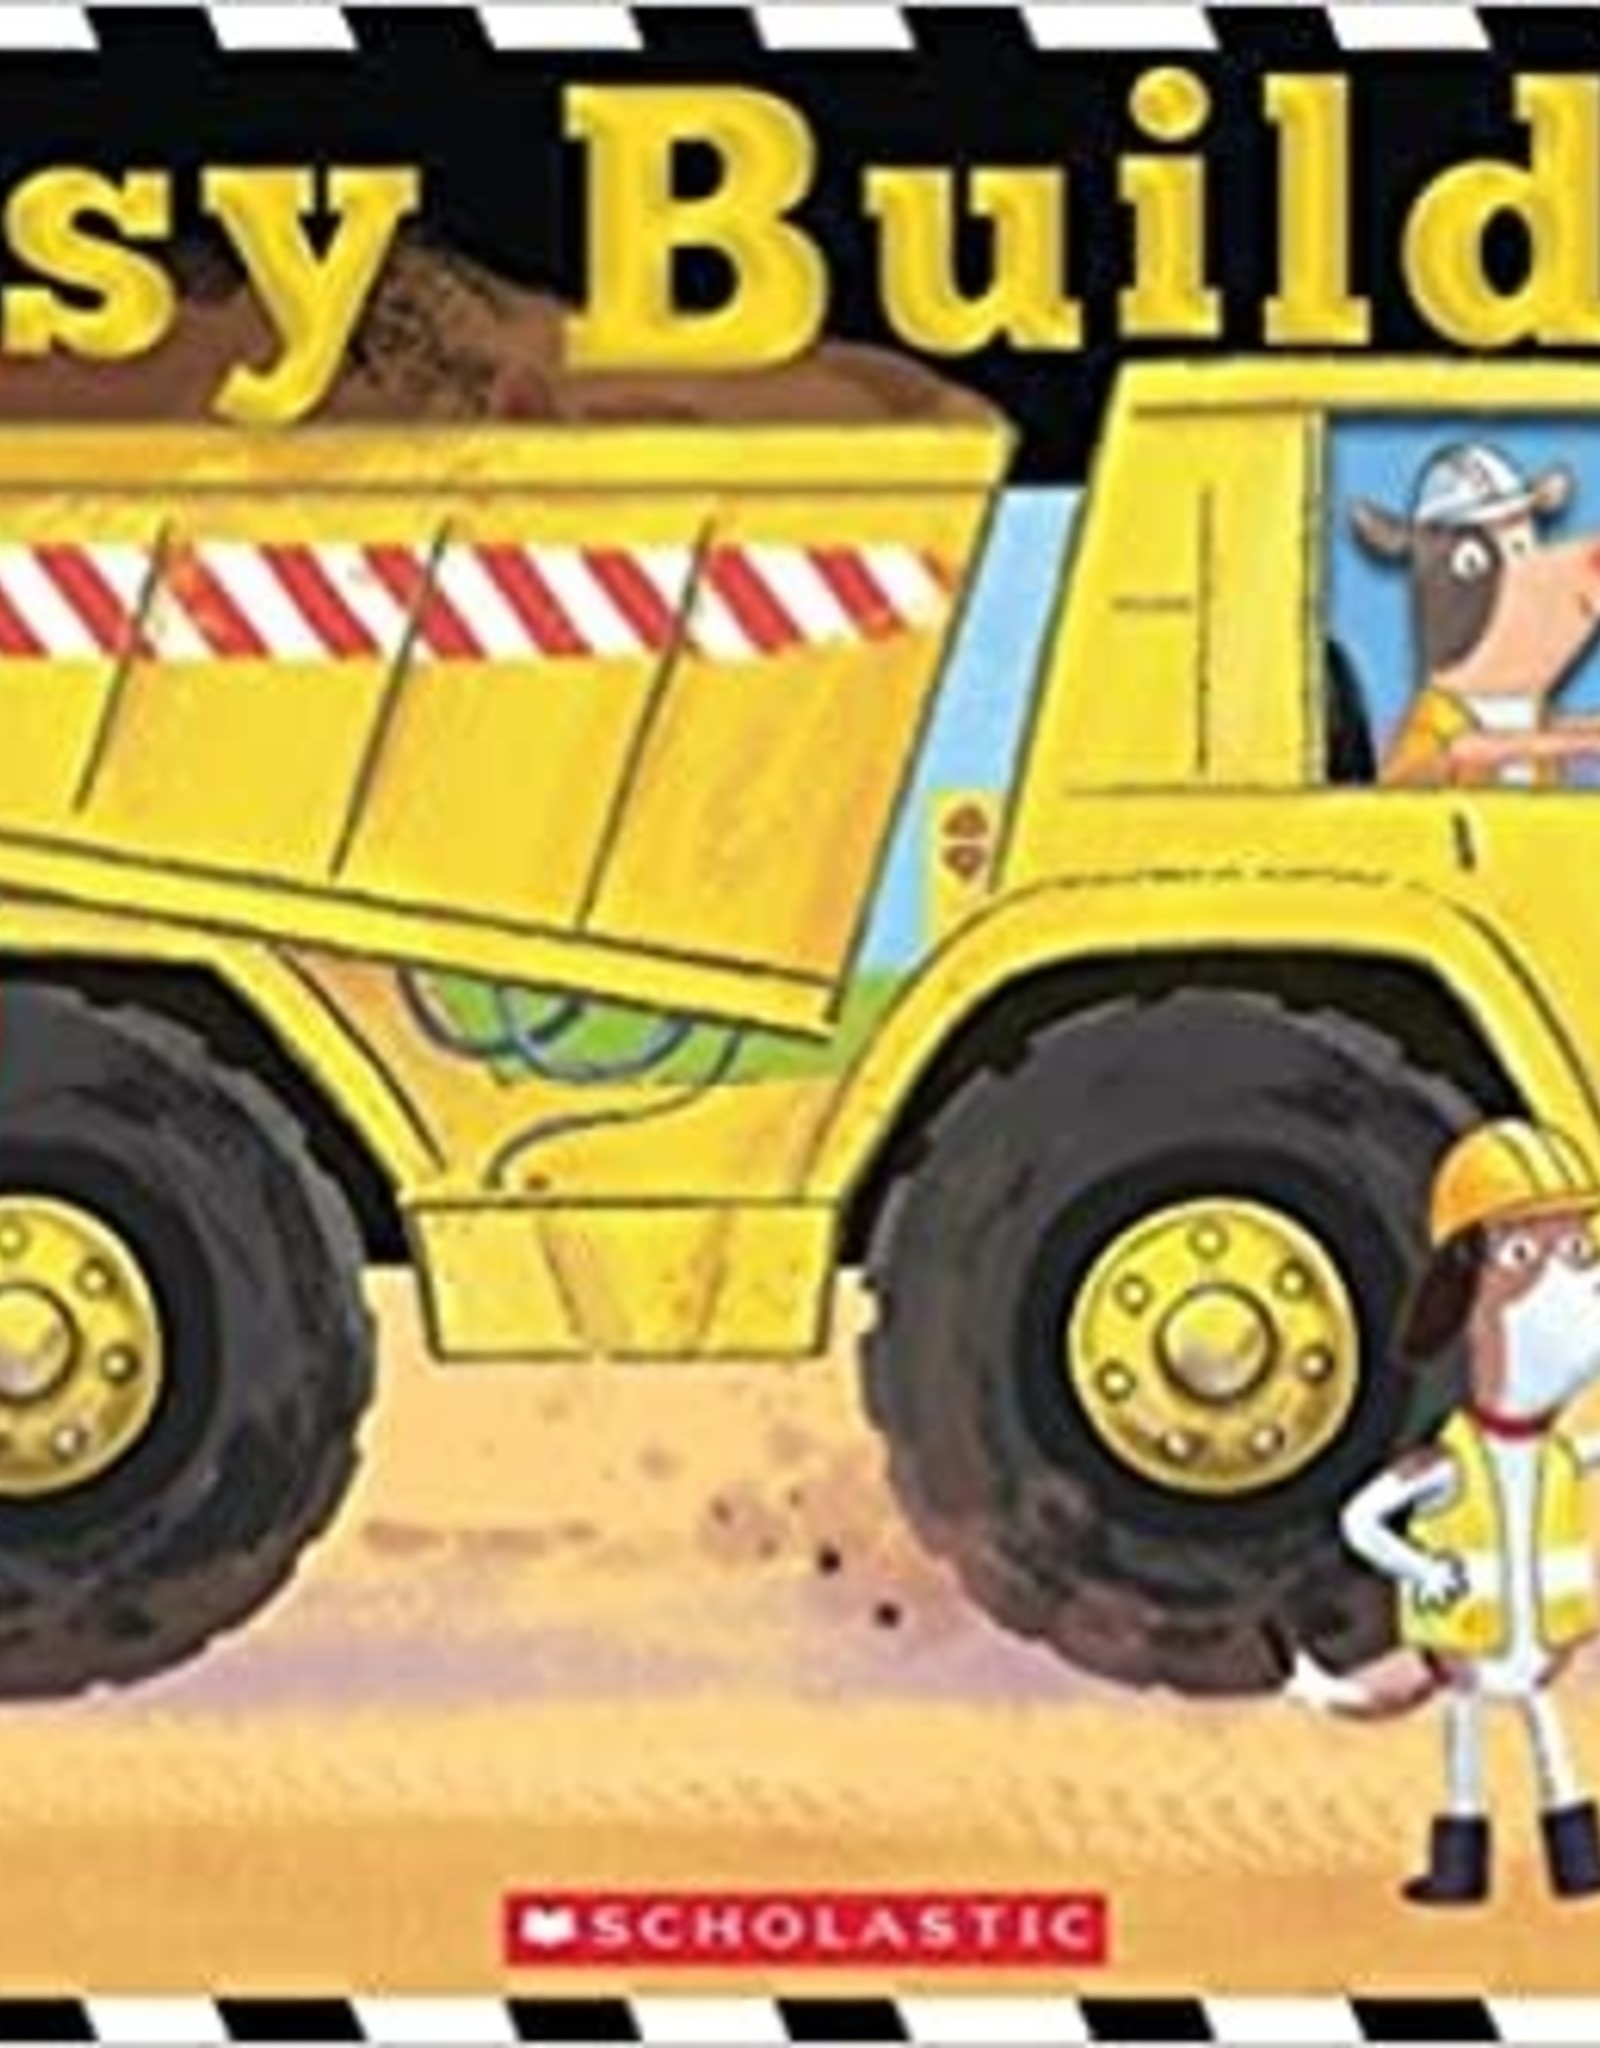 Scholastic Busy Builders